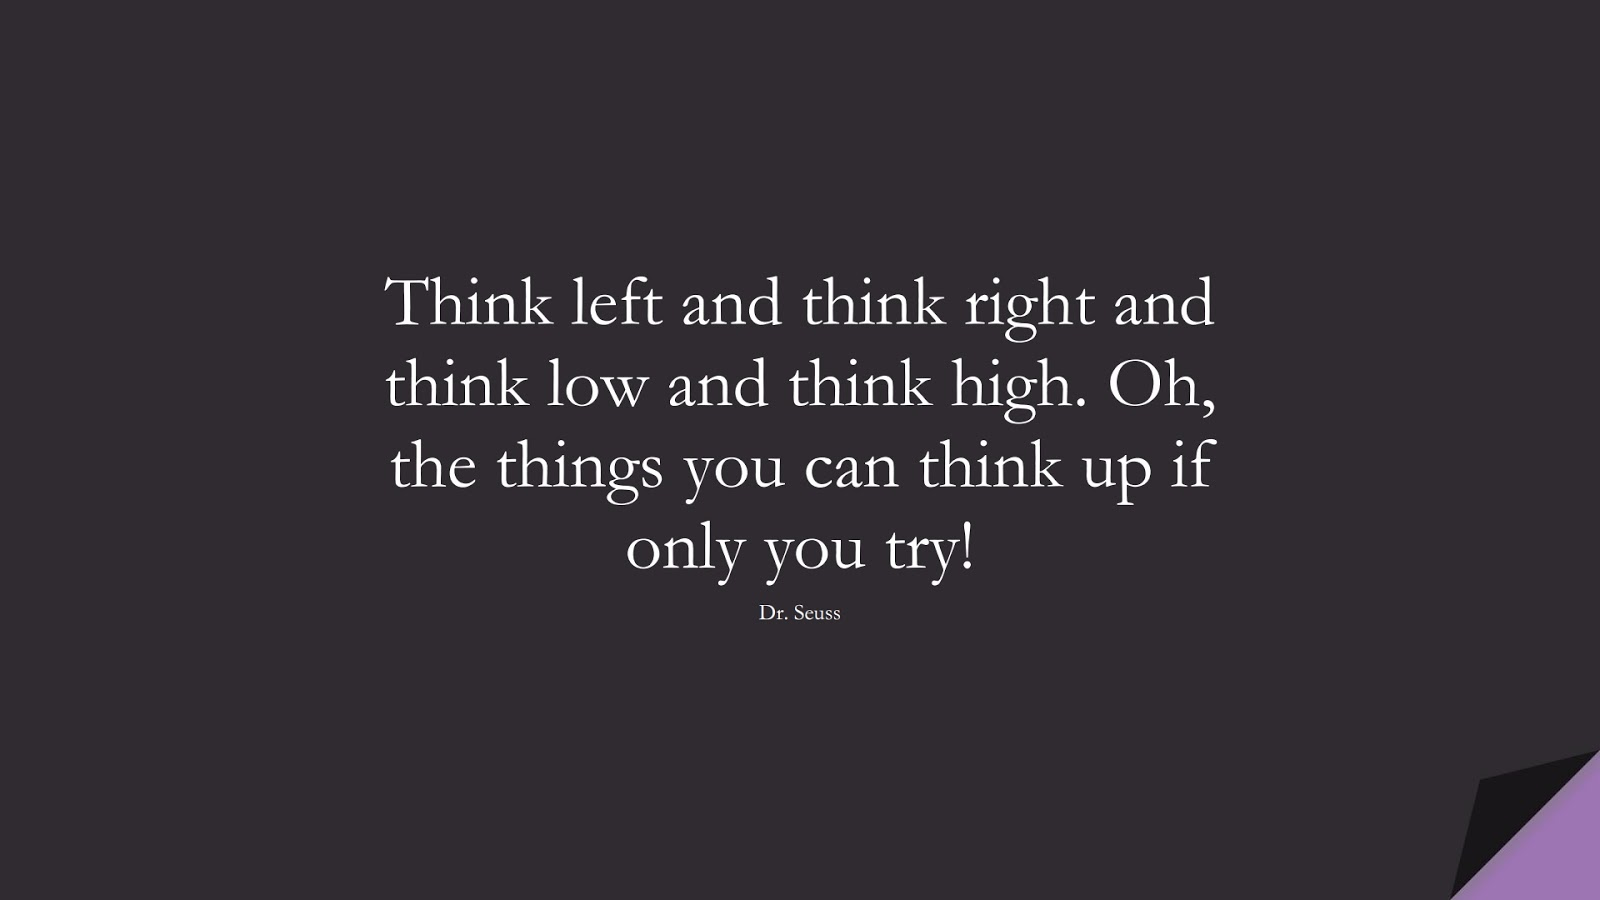 Think left and think right and think low and think high. Oh, the things you can think up if only you try! (Dr. Seuss);  #HopeQuotes